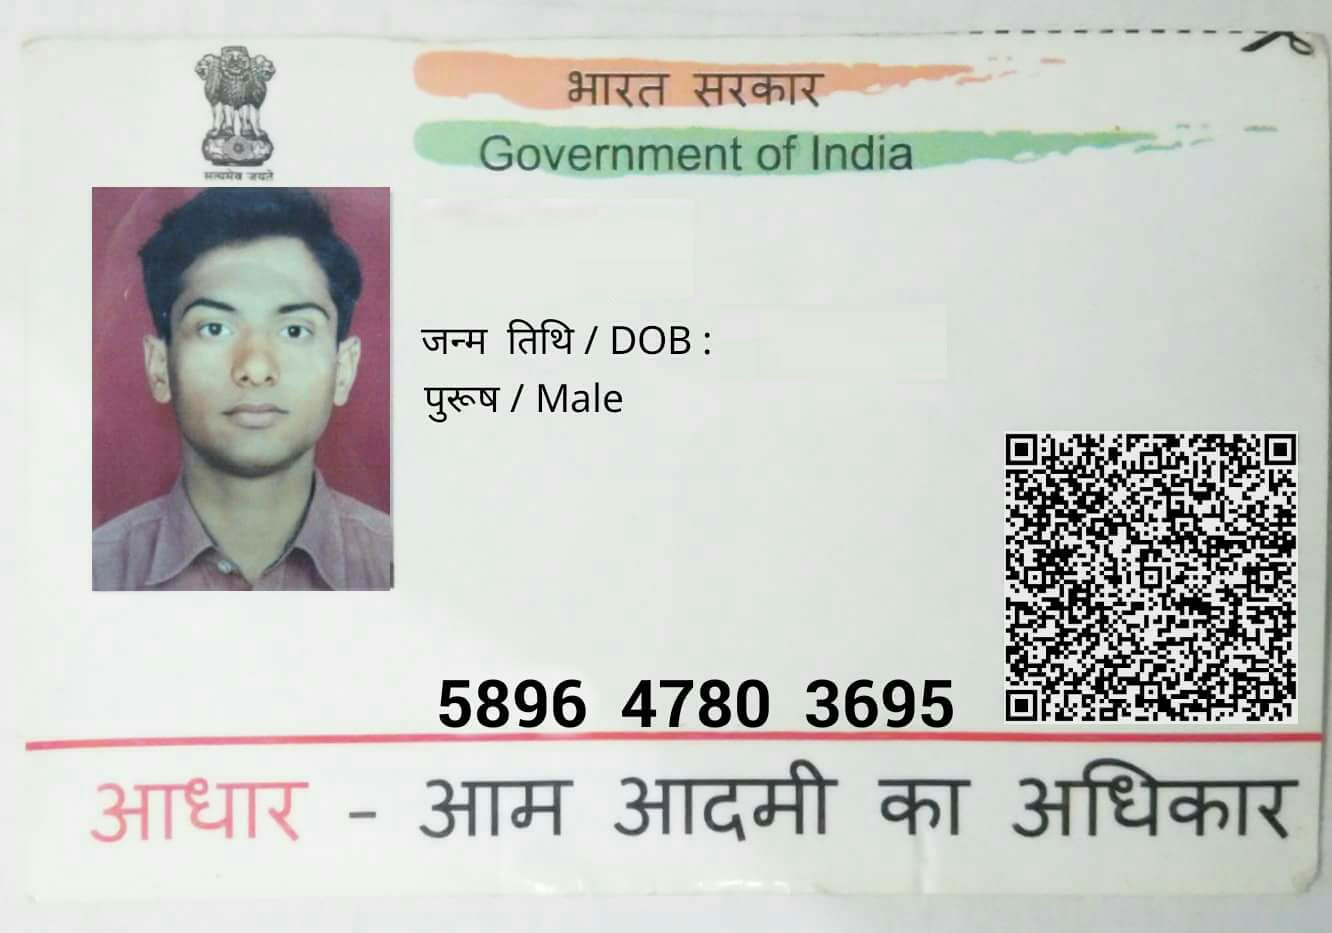 Cool Trick & Hacking Method : Govt Id Card for Id Verification